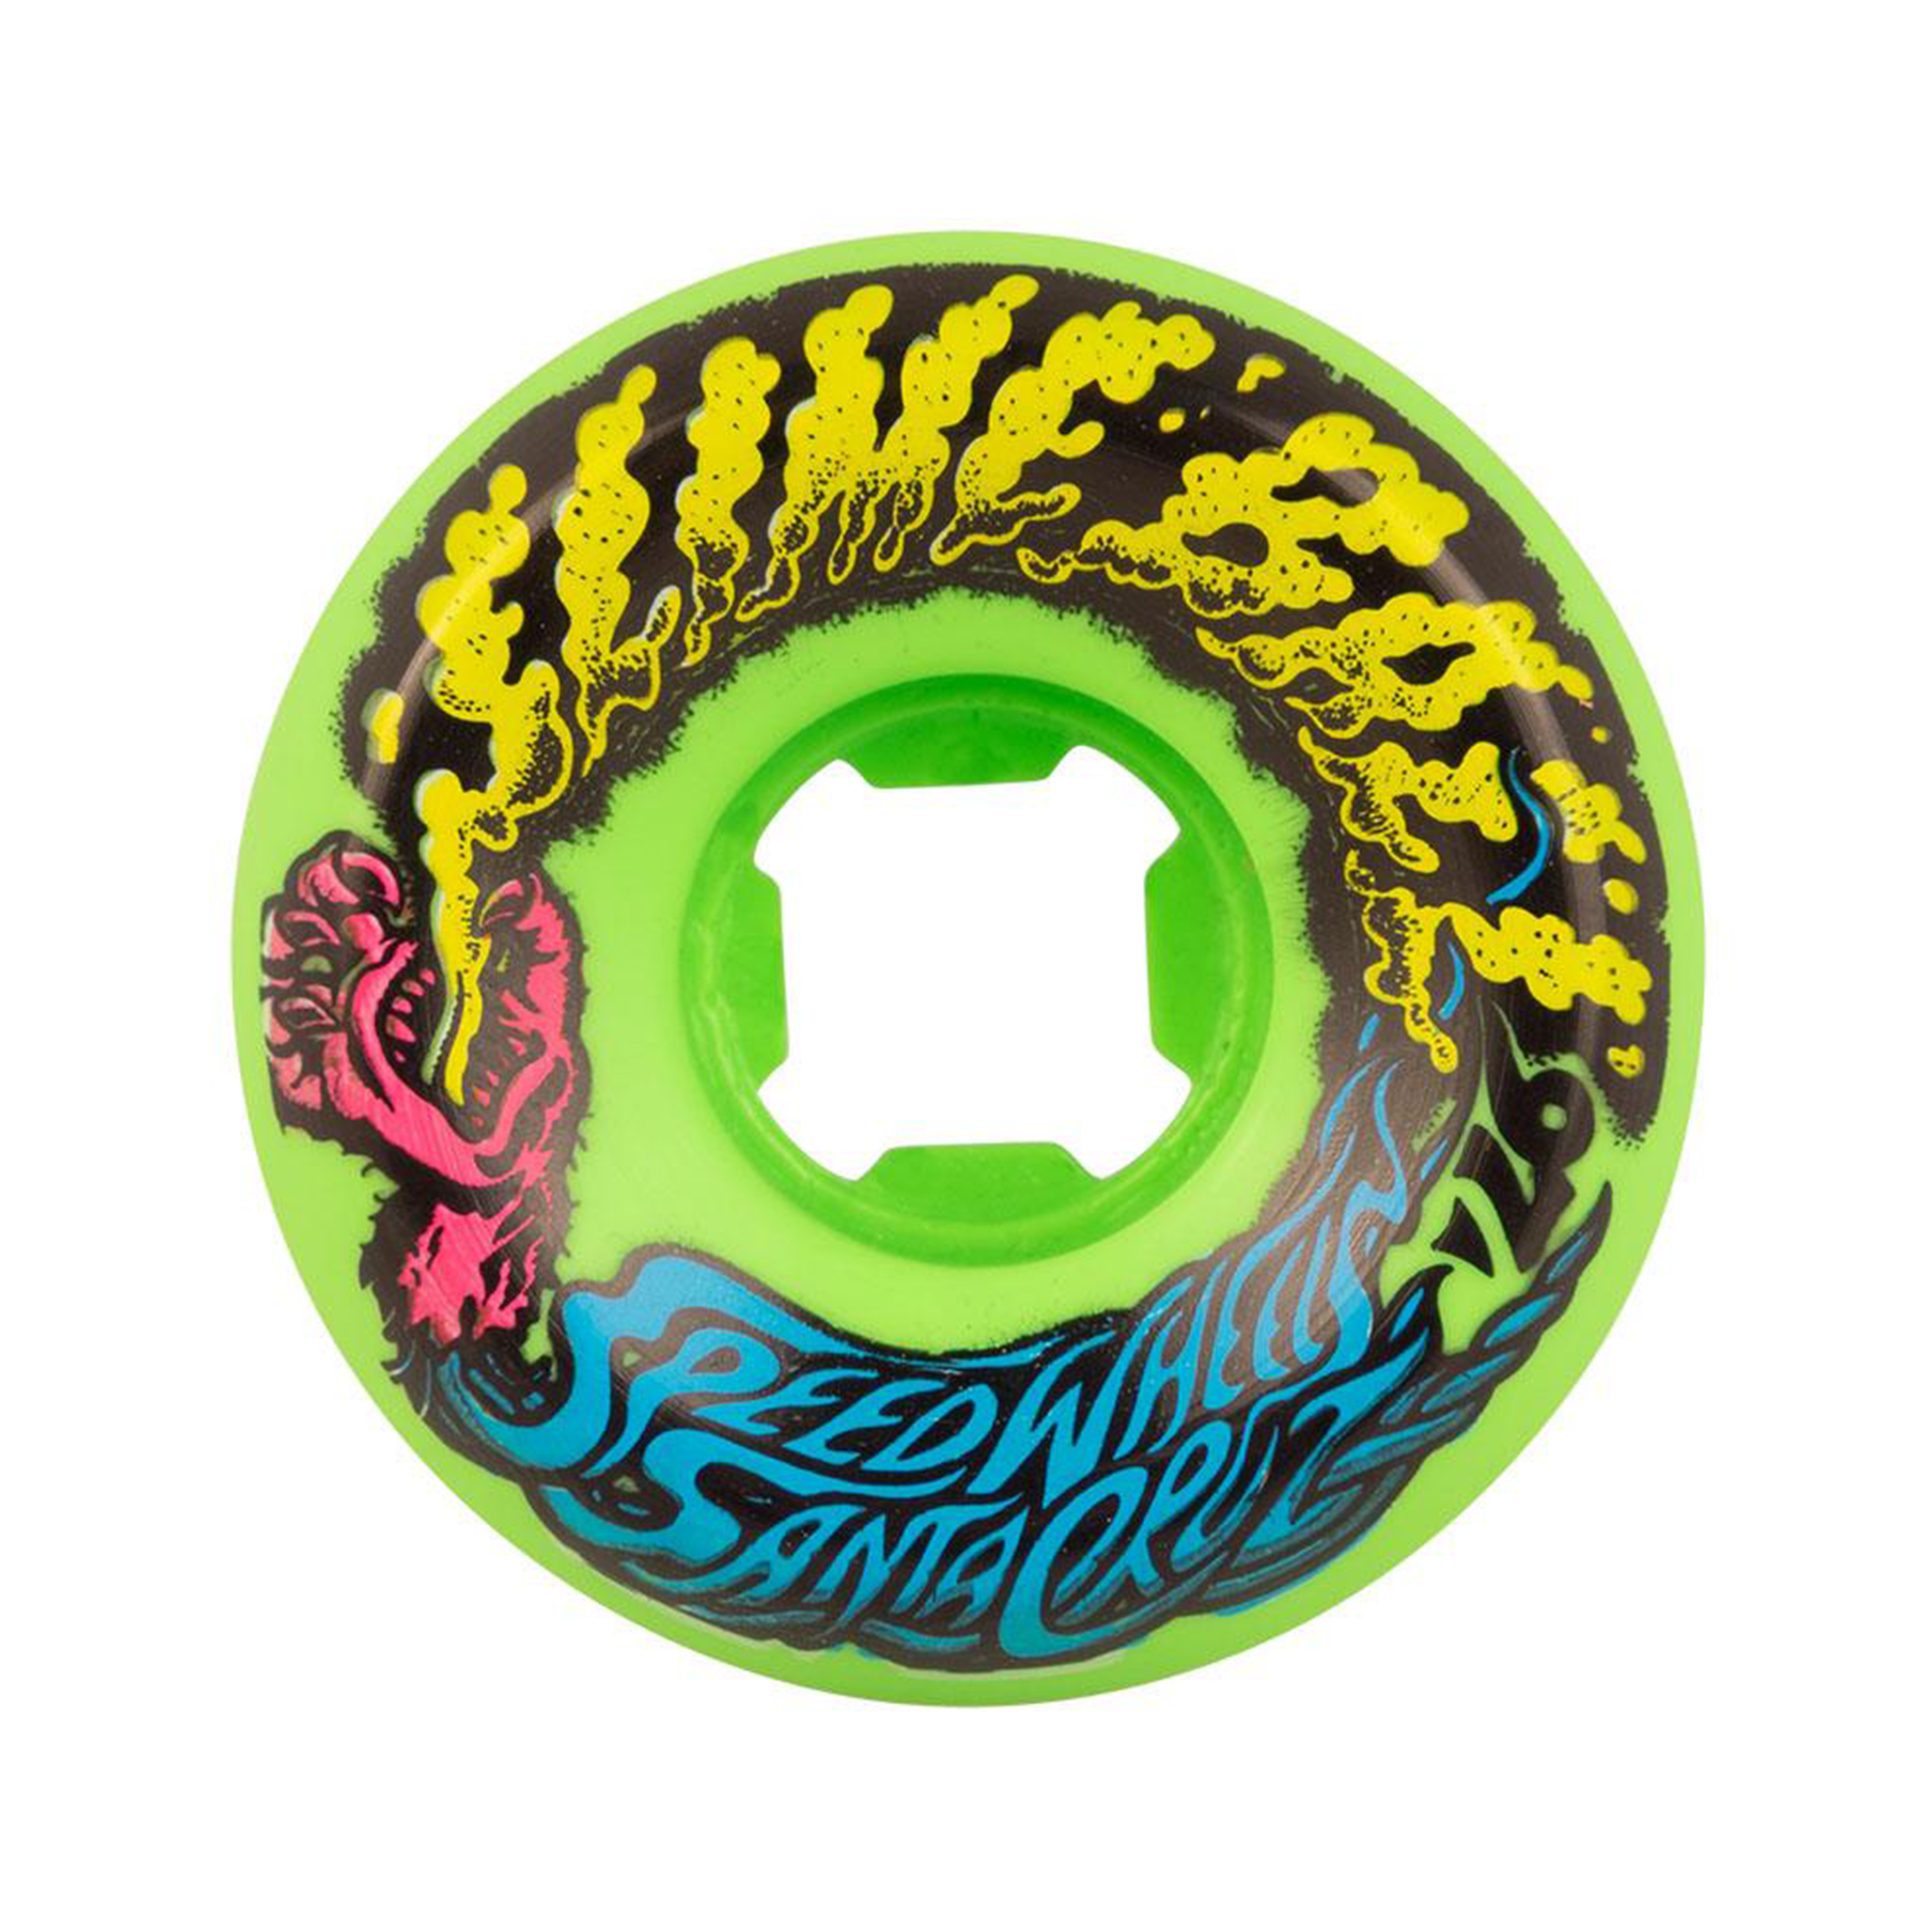 SANTA CRUZ SLIMEBALLS GREEN - 54MM